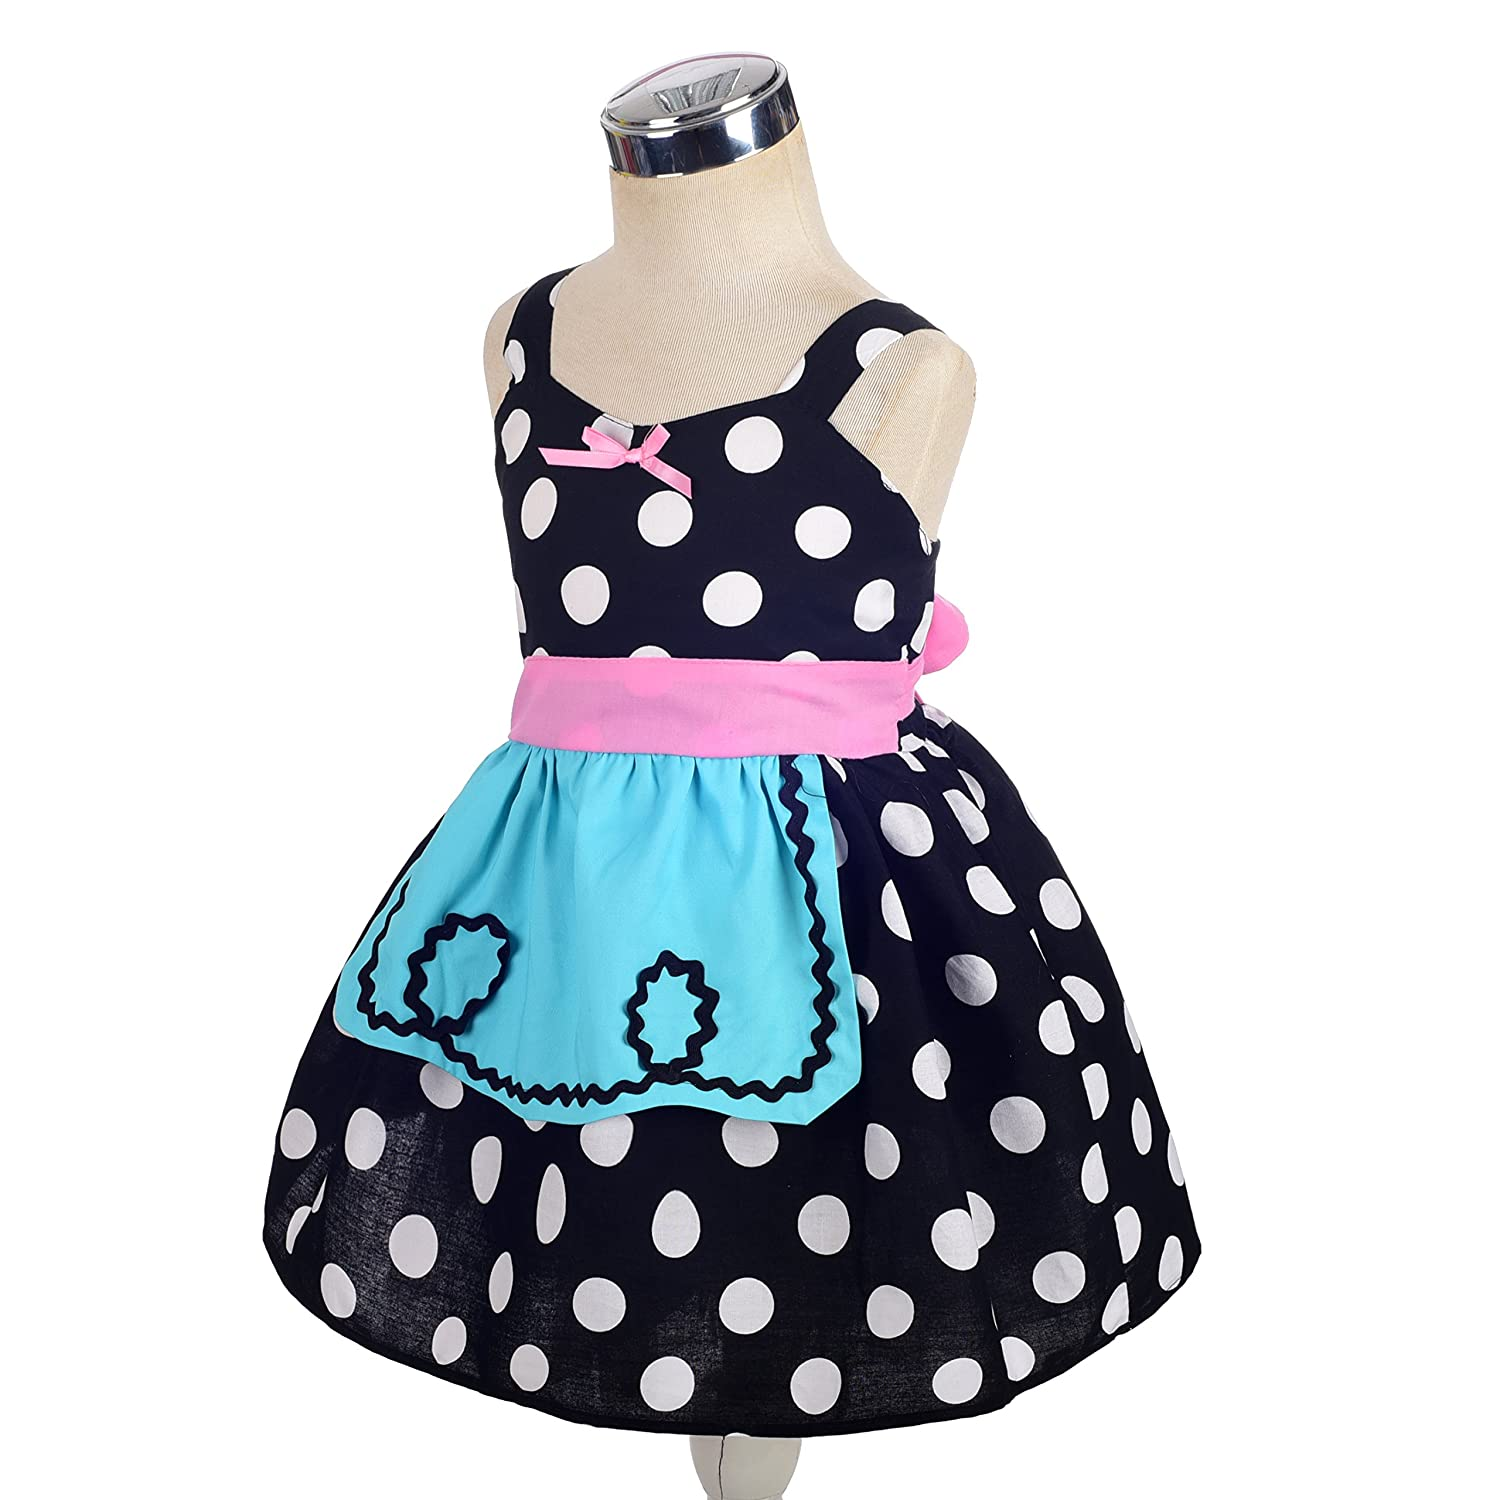 d789fcce911 Amazon.com  Dressy Daisy Princess Snow White Dress Alice Dress with Apron  Summer Dresses for Baby   Toddler  Clothing